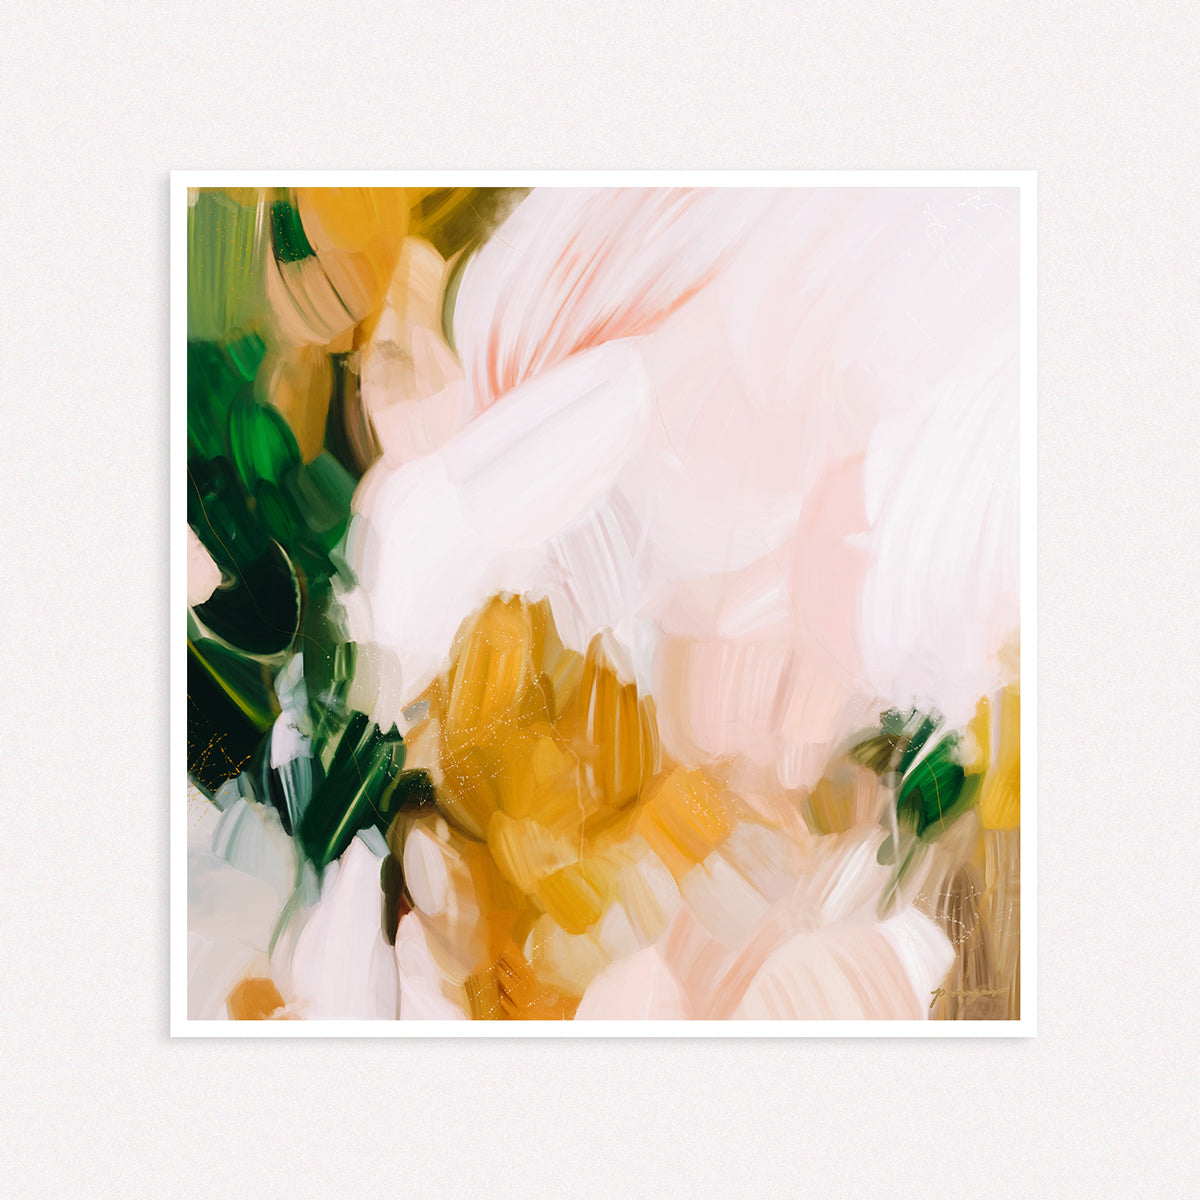 Camellia, large pink and green abstract art print by Parima Studio. Limited edition.